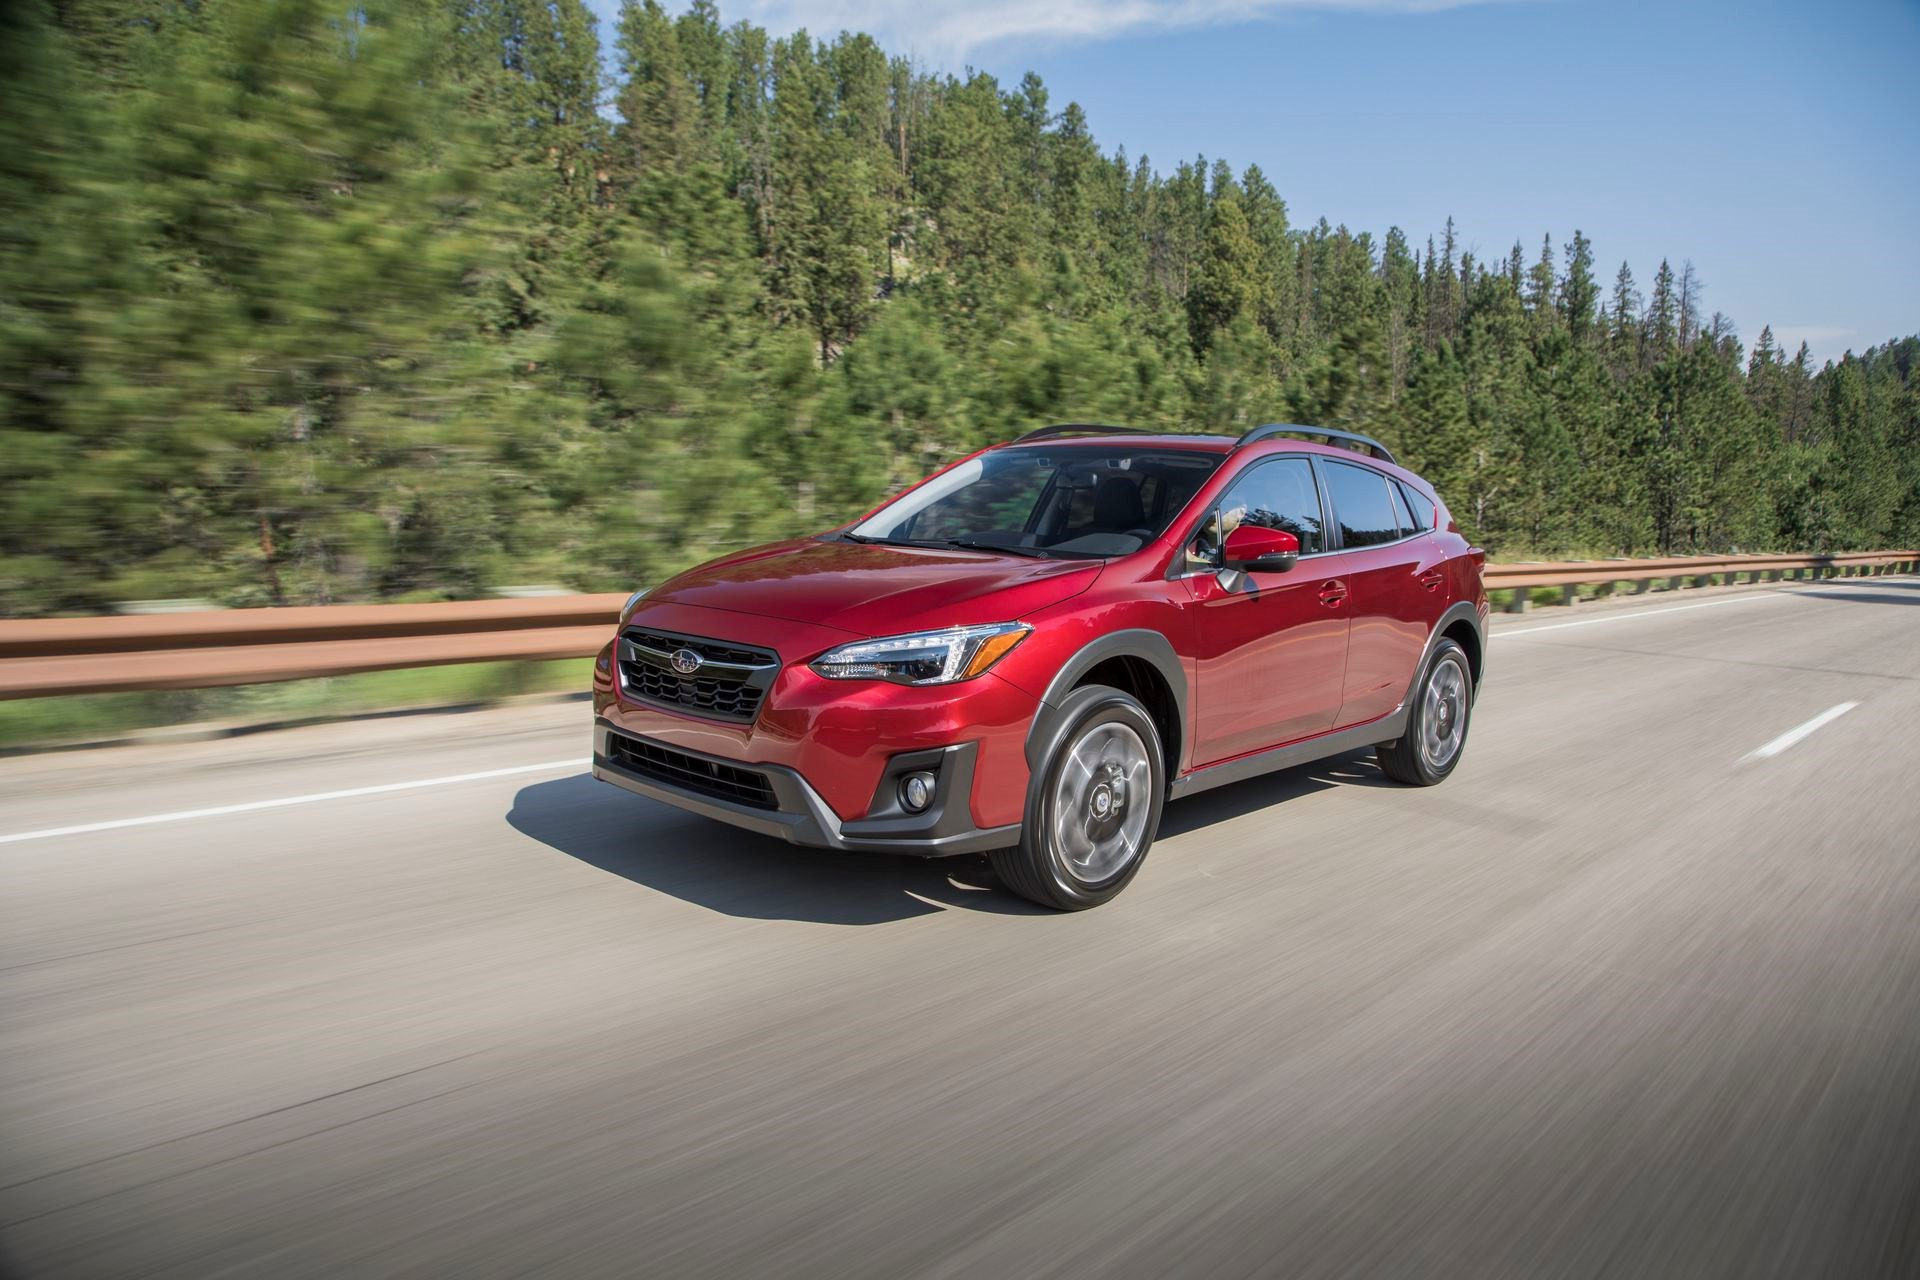 New 2019 Subaru-Crosstrek 2.0i Base Crosstrek 2.0i Base for sale $22,895 at M and V Leasing in Brooklyn NY 11223 1